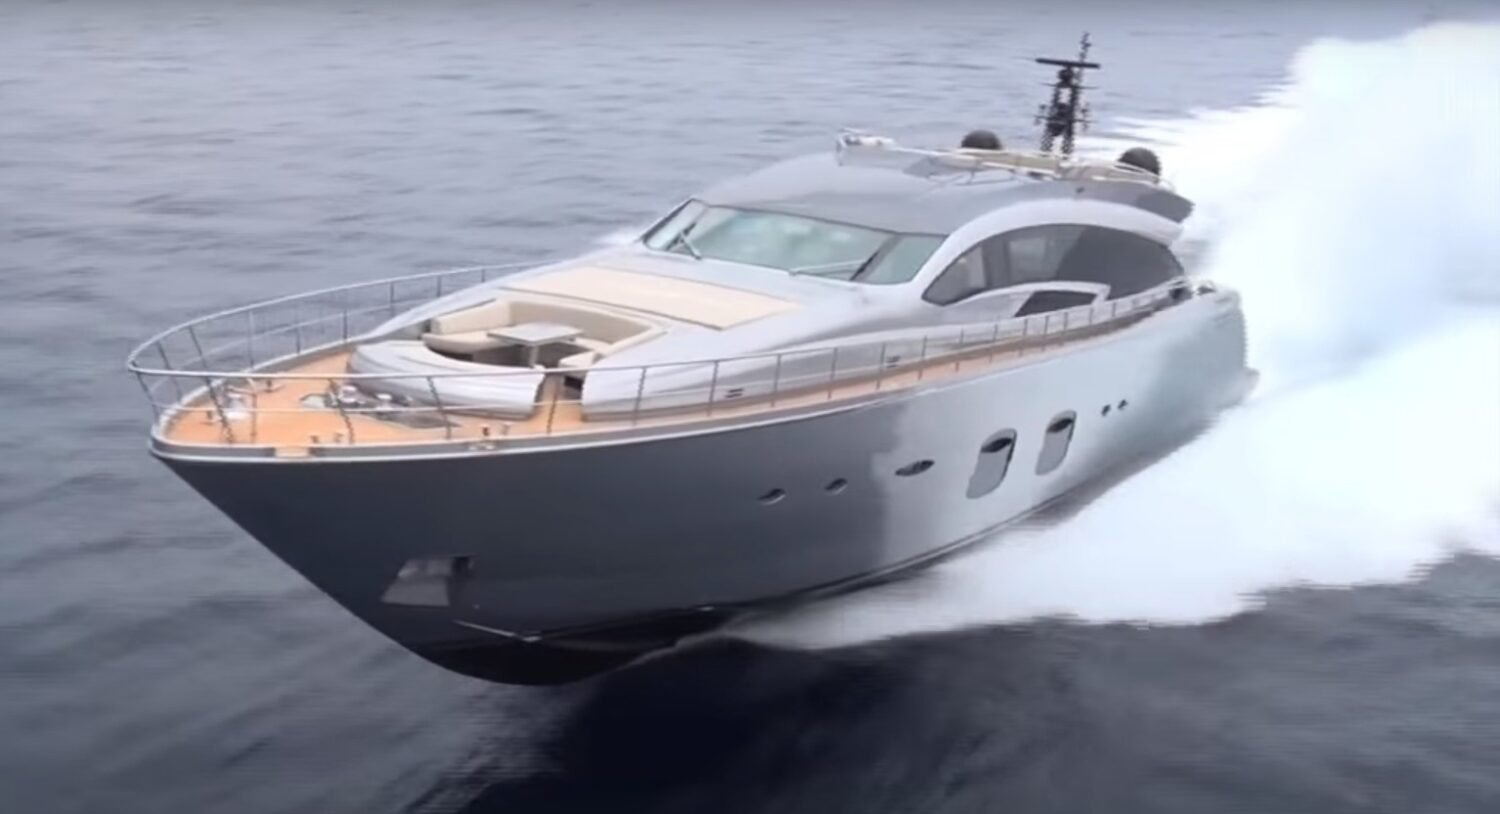 M/Y P108 Hull from Pershing Yachts